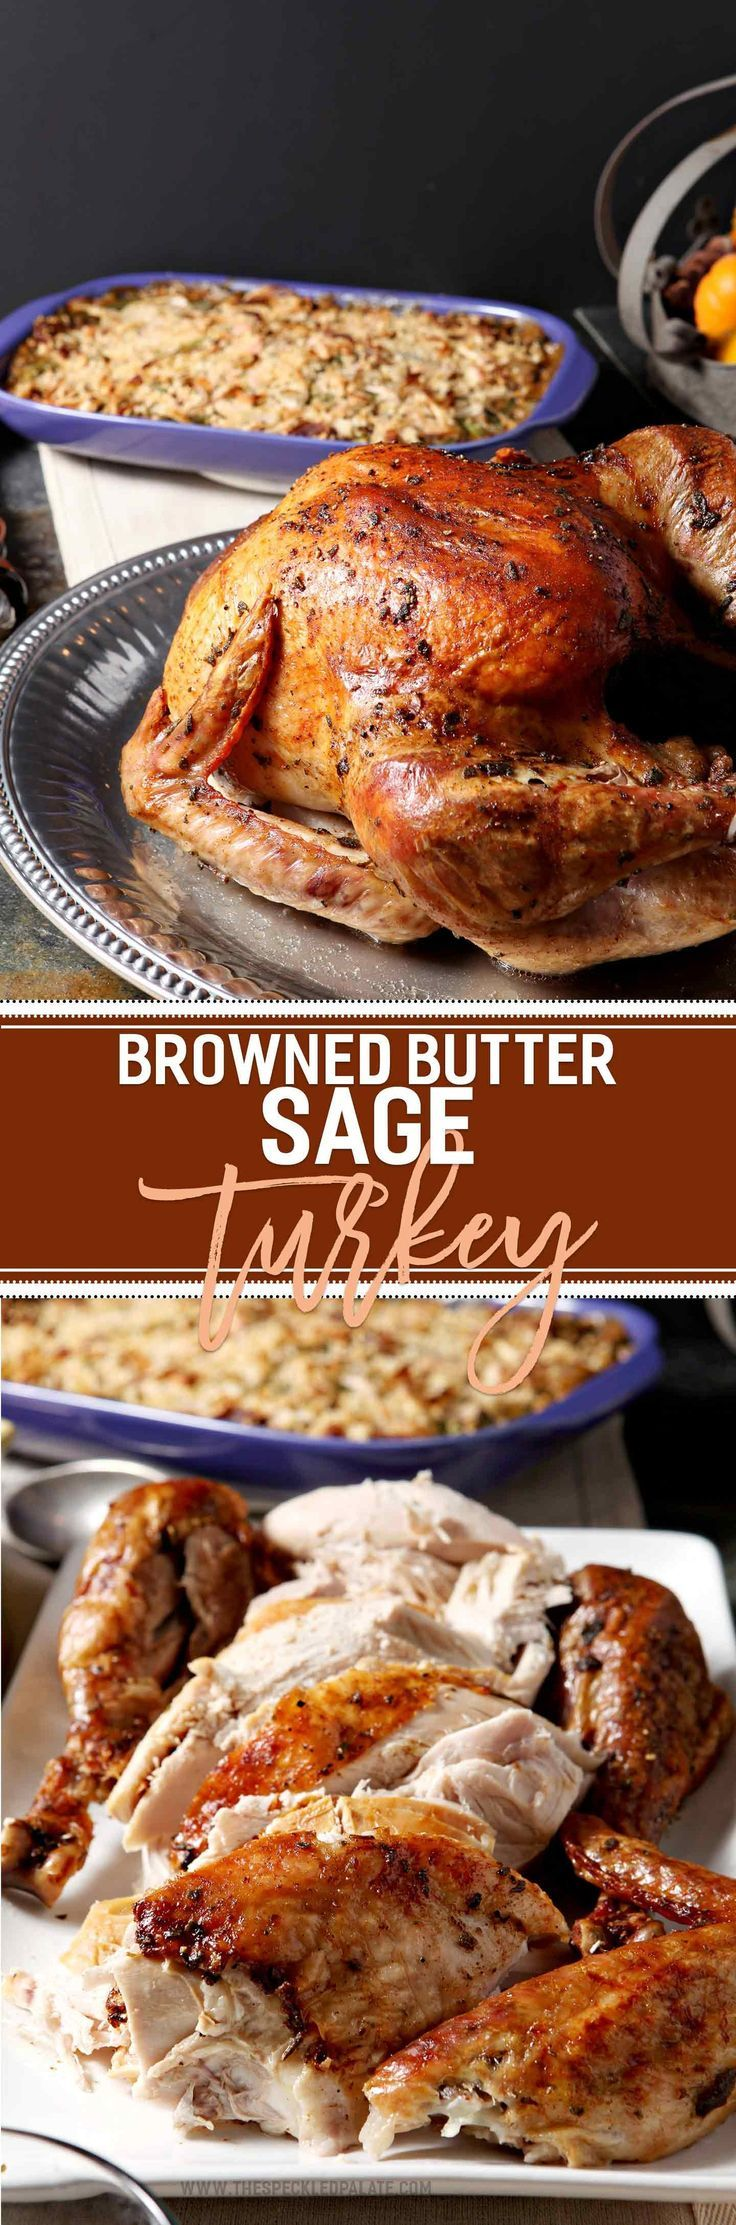 Prepare a showstopping entree for the holidays this year! Browned Butter Sage Turkey is a decadent twist on the classic roasted turkey. Brown butter in a pan with fresh sage, then slather a Honeysuckle White Fresh Whole Turkey with the sage browned butter. Bake until golden brown, and serve warm with homemade gravy and traditional sides! This turkey makes a flavorful entree for Thanksgiving or ANY holiday celebration!